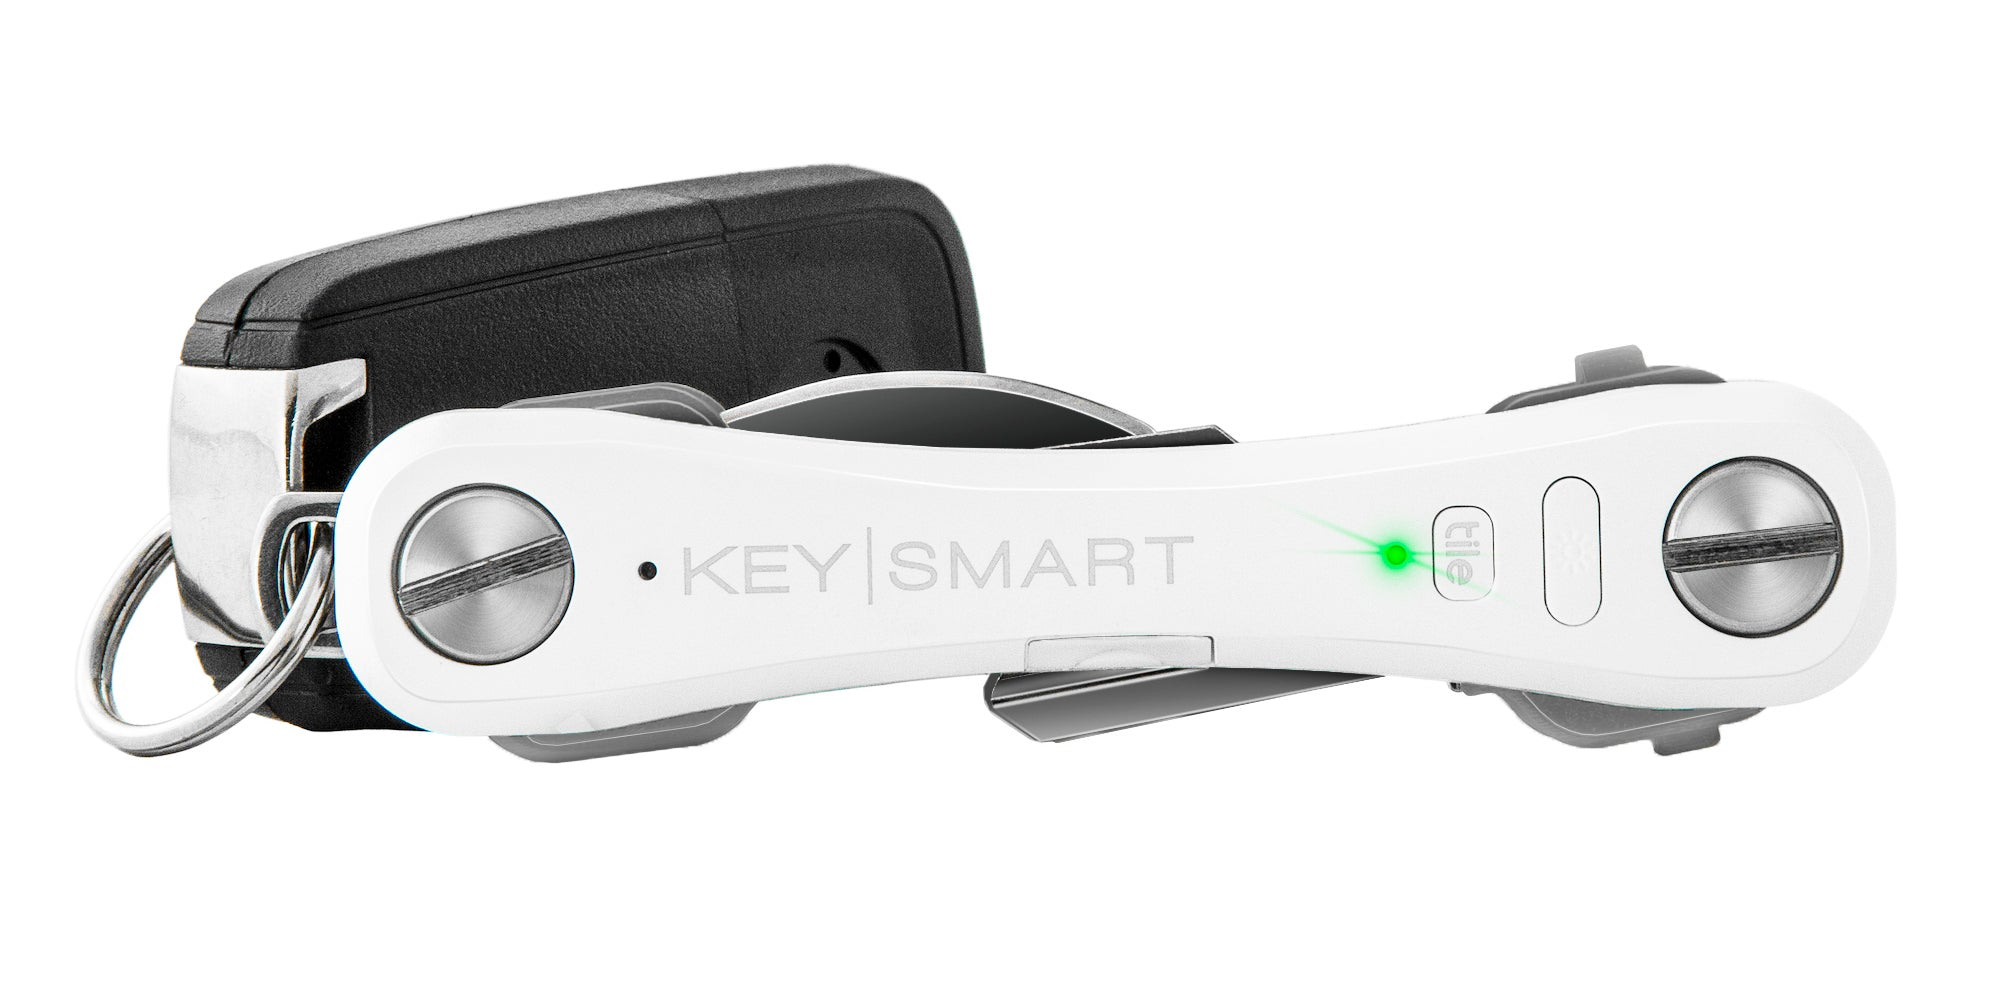 KeySmart - The Best Compact Key Holder